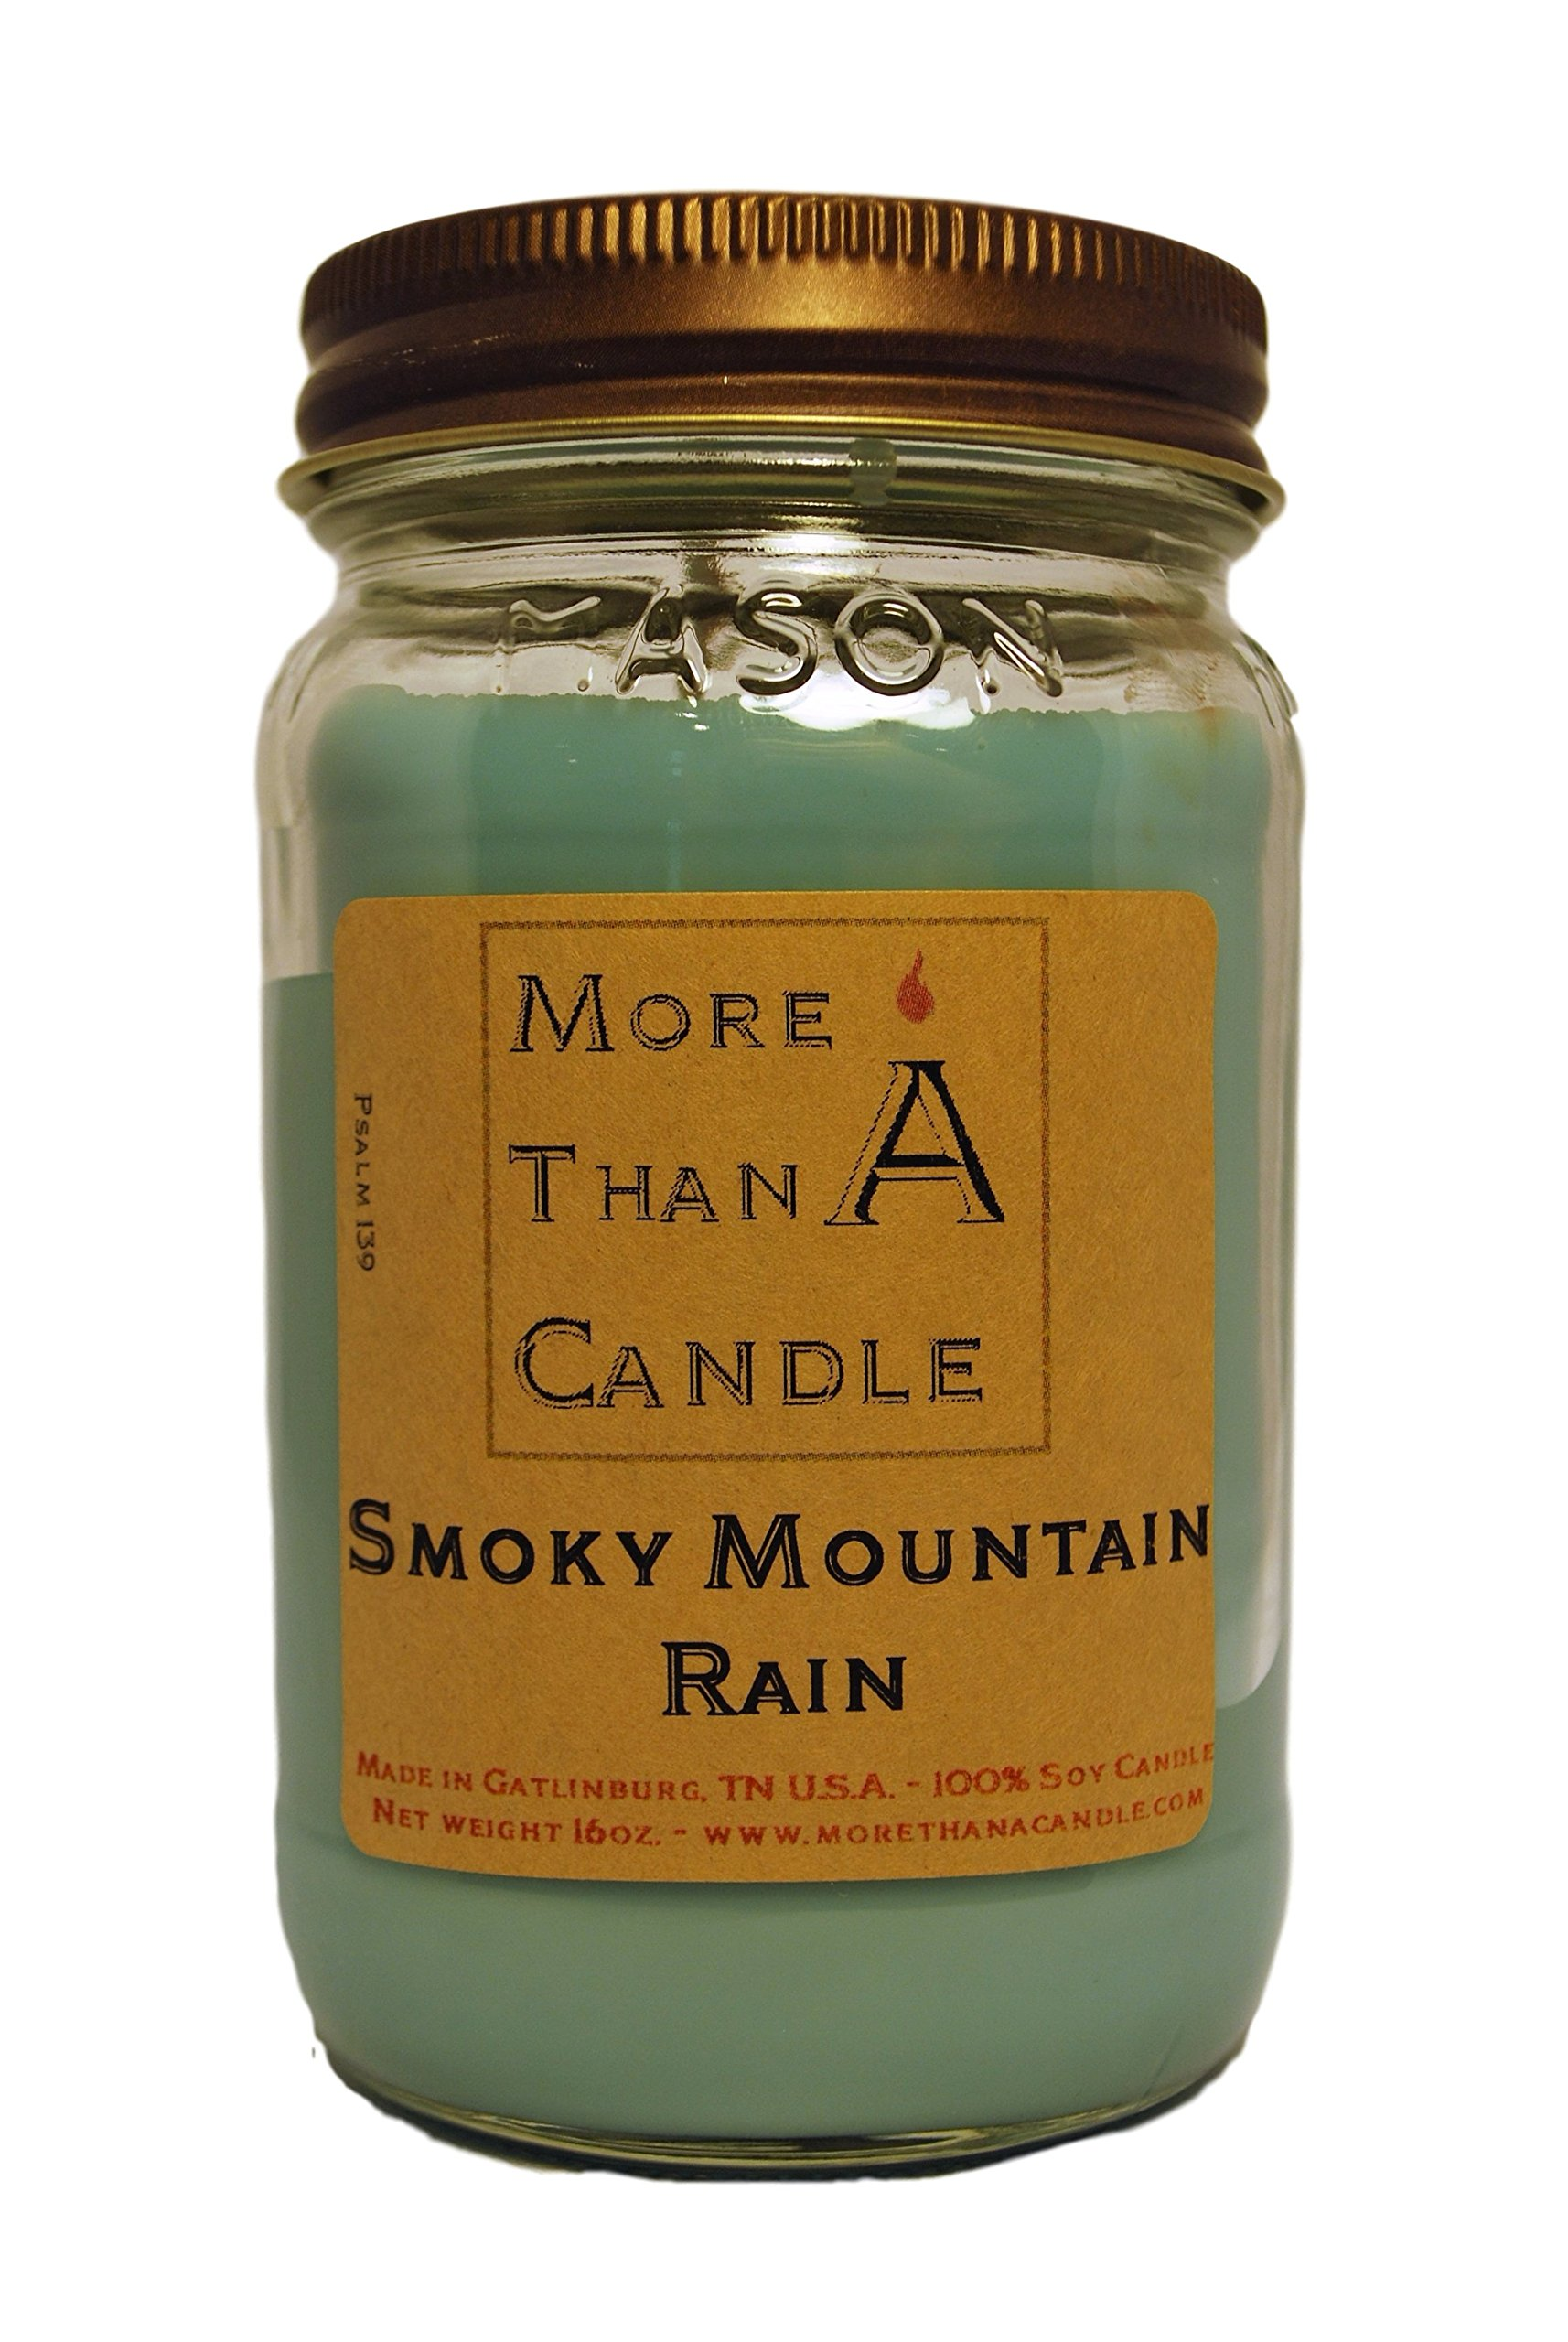 More Than A Candle 16 oz Mason Jar Soy Candle - Made in the USA Smoky Mountain Rain